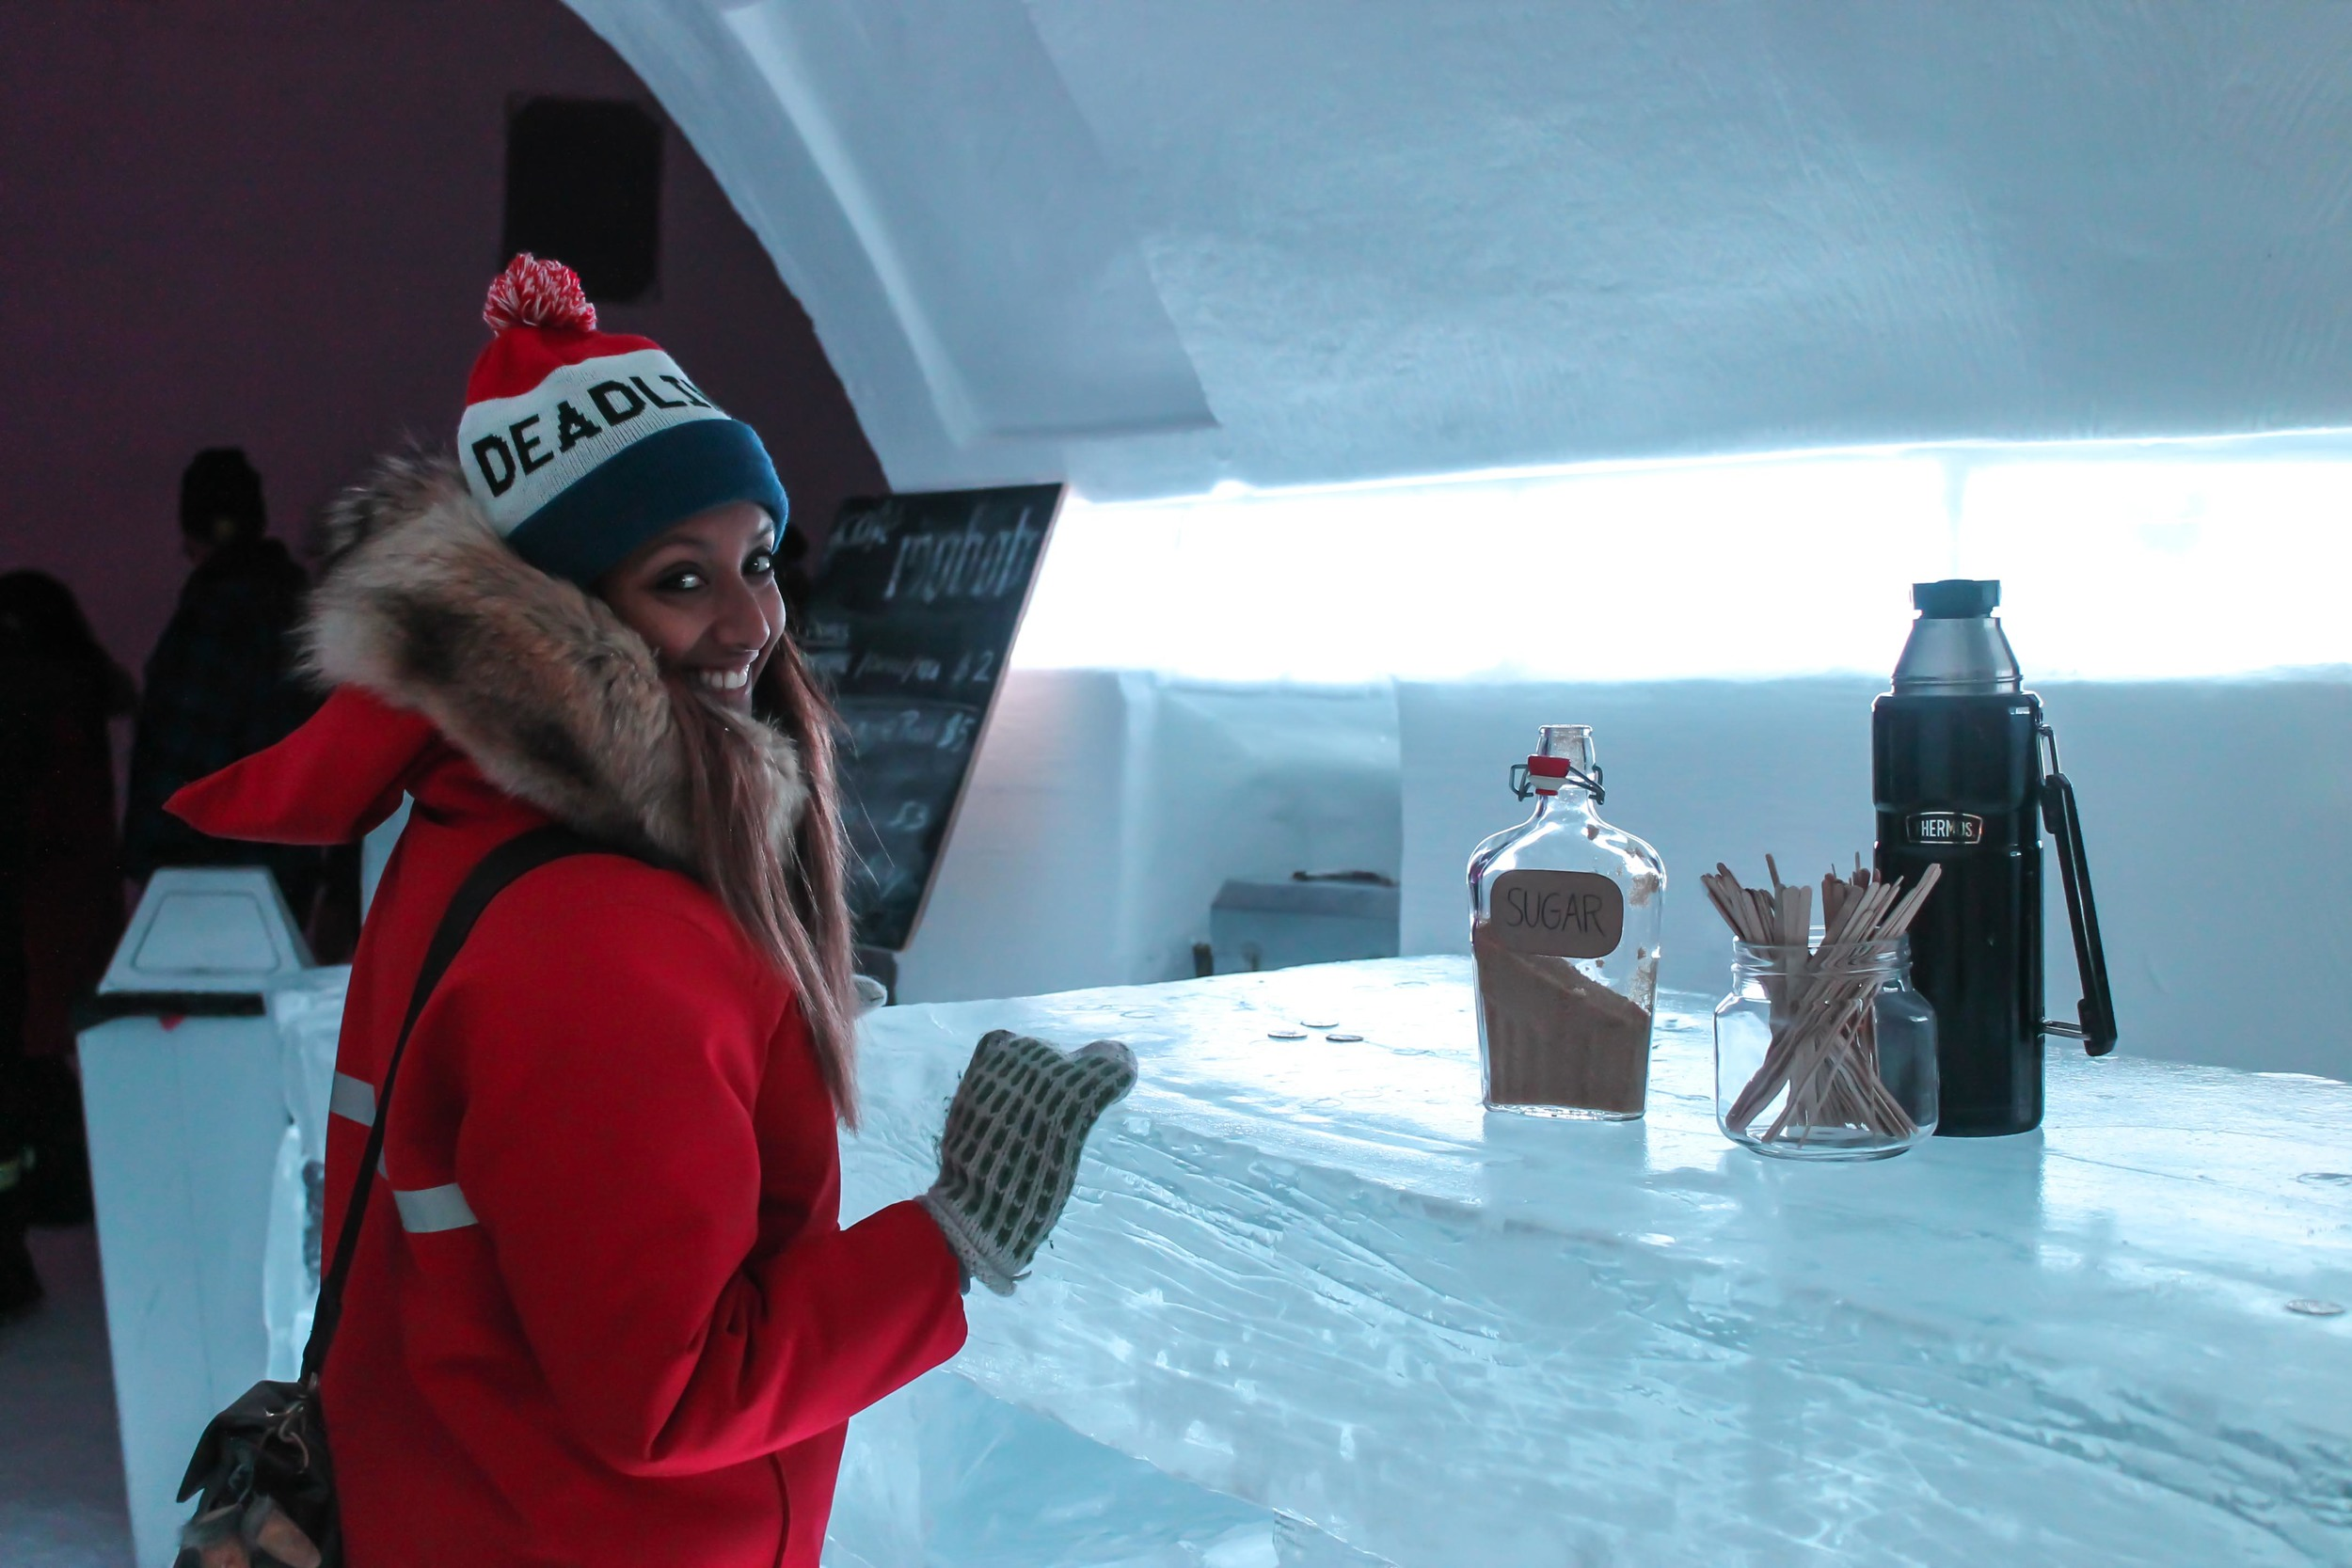 Anubha ordering a hot chocolate at an ice bar inside the Snowking's castle.